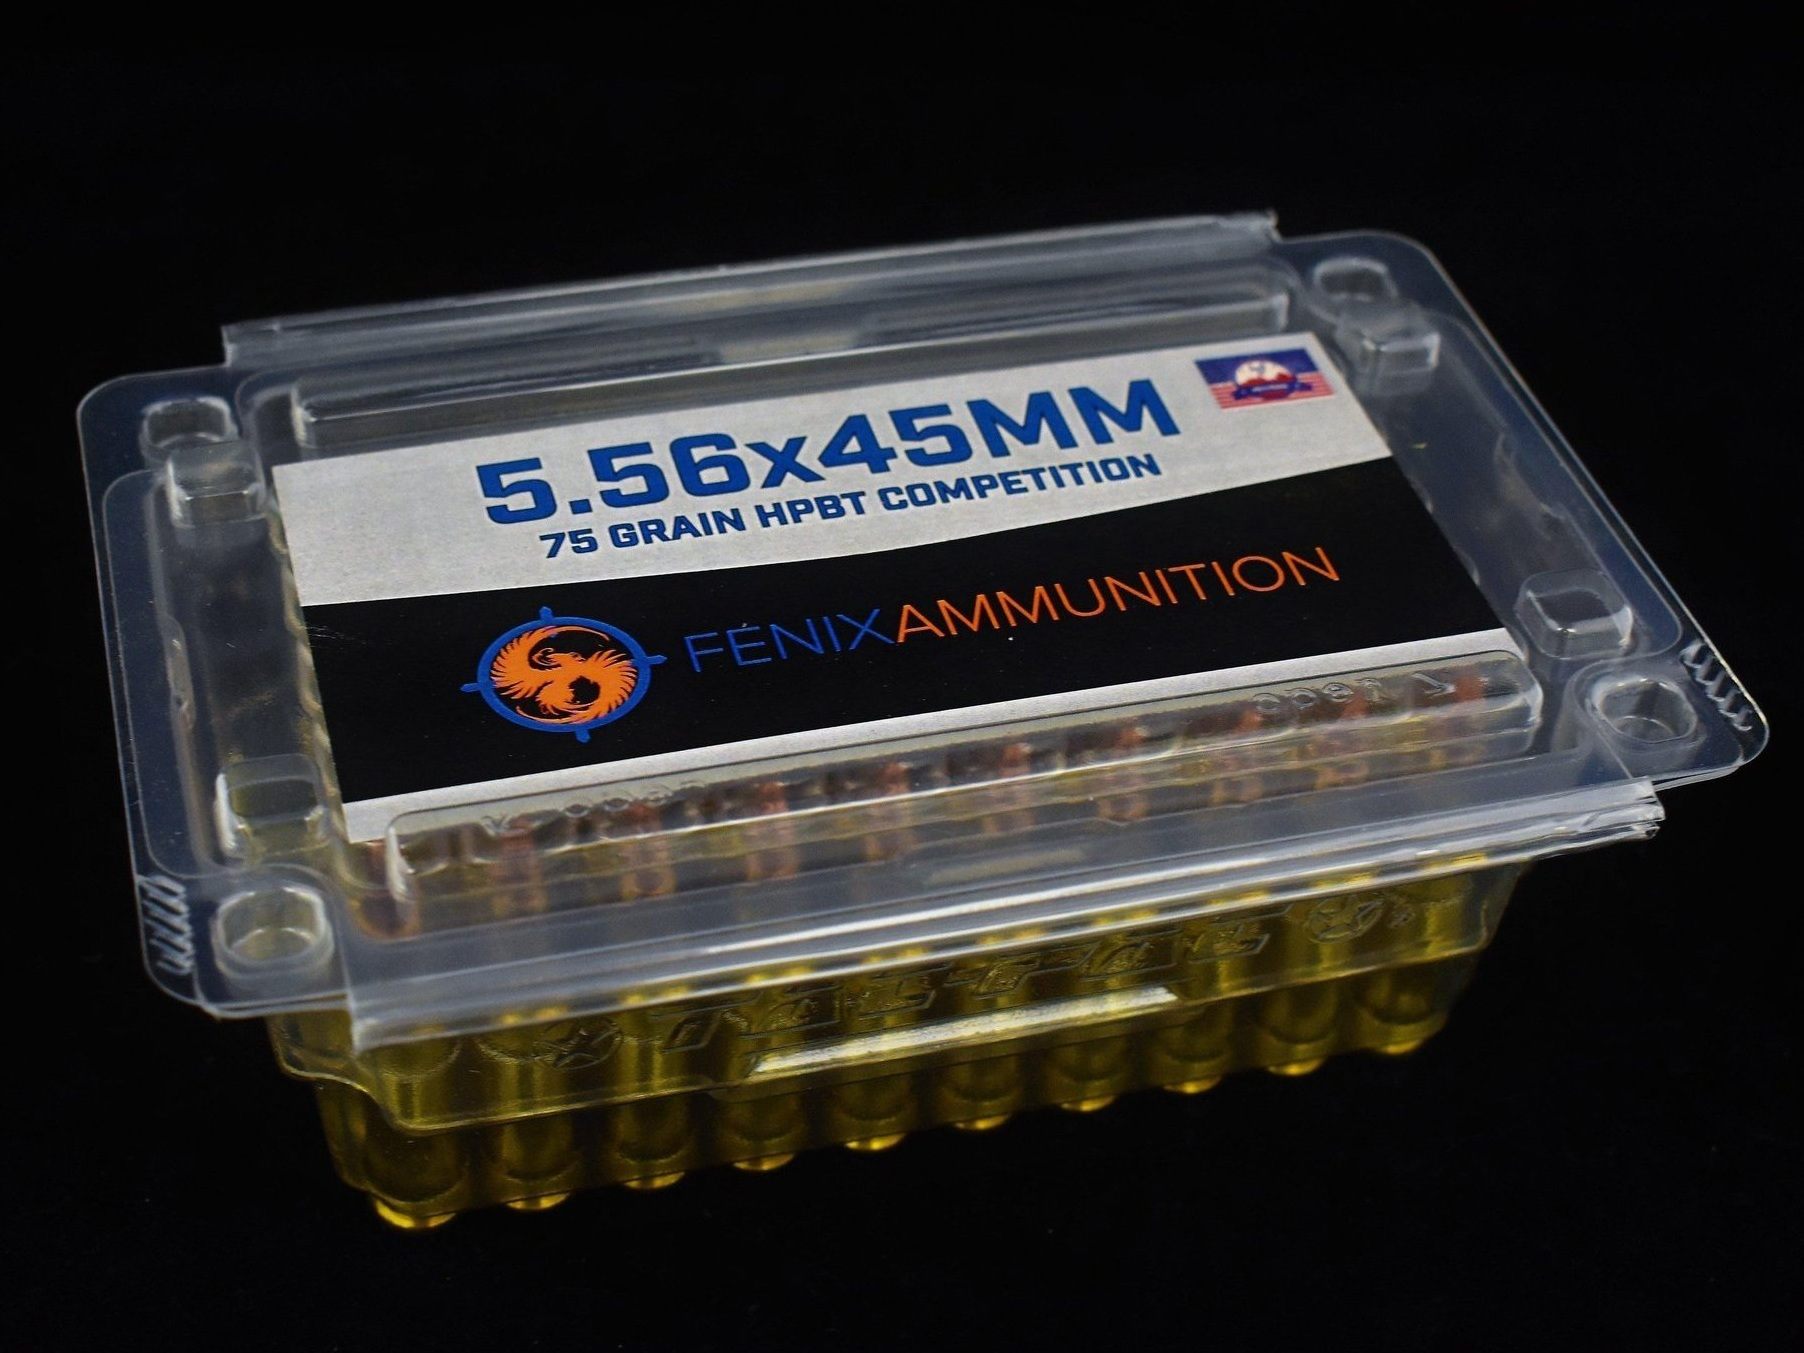 556x45mm-75gr-hpbt-competition-competition-ammo-fenix-ammunition_1024x1024%402x.jpg